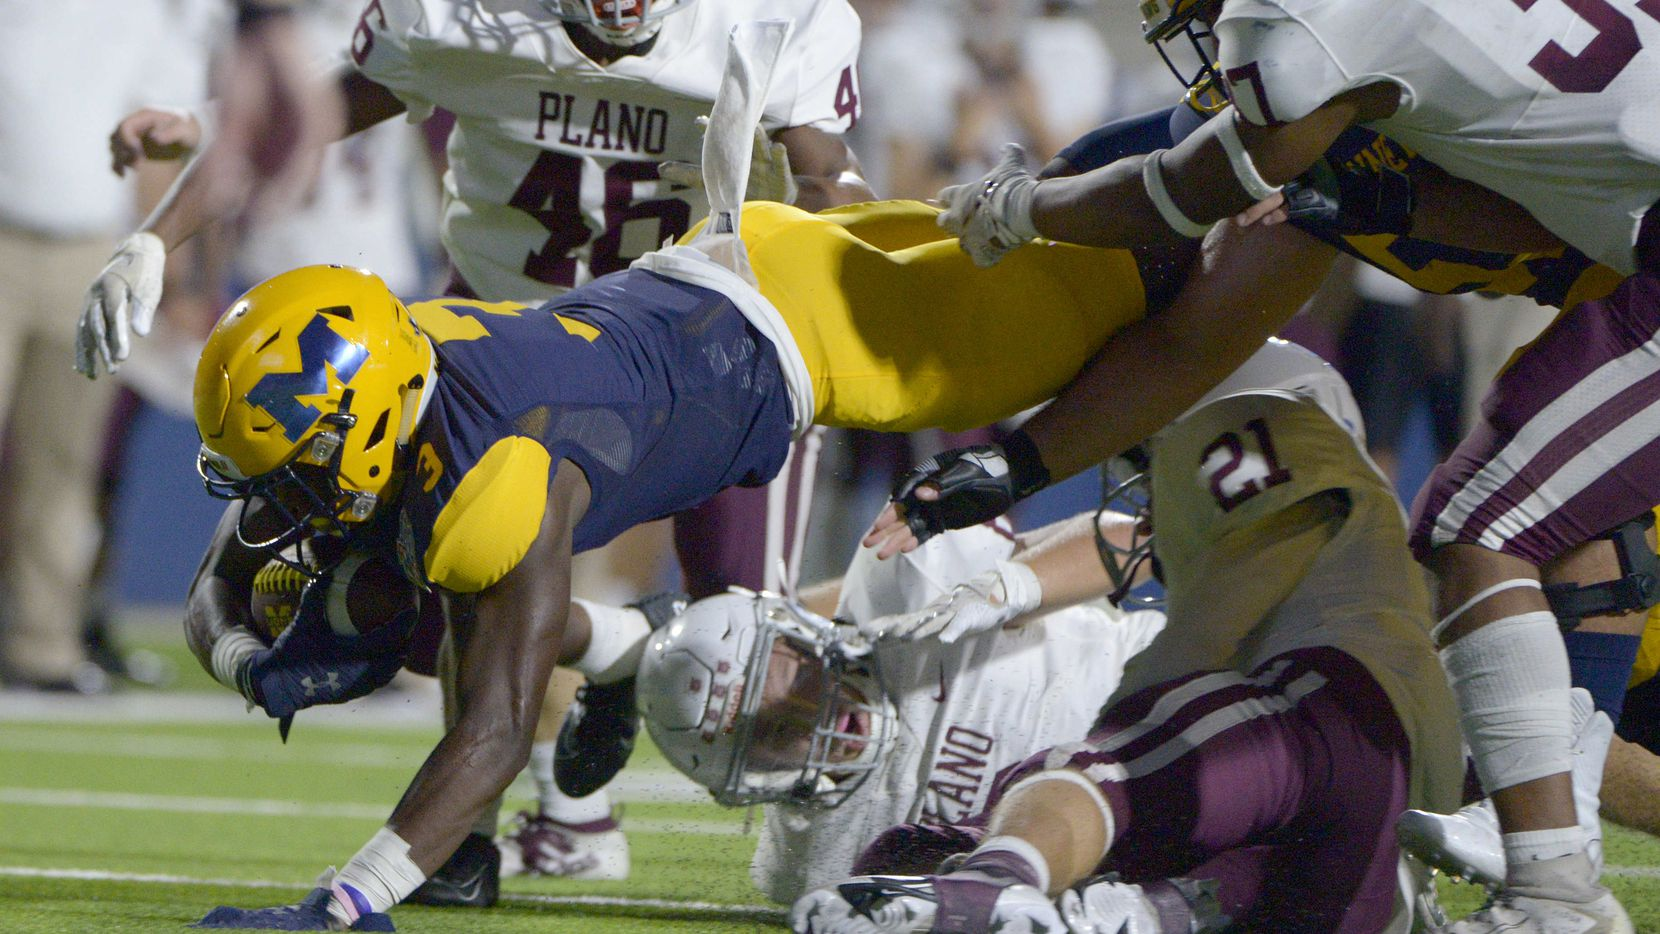 McKinney's Omari Walker reaches for extra yards in the second quarter during a high school football game between Plano and McKinney, Friday, Sept, 25 2020, in McKinney, Texas.